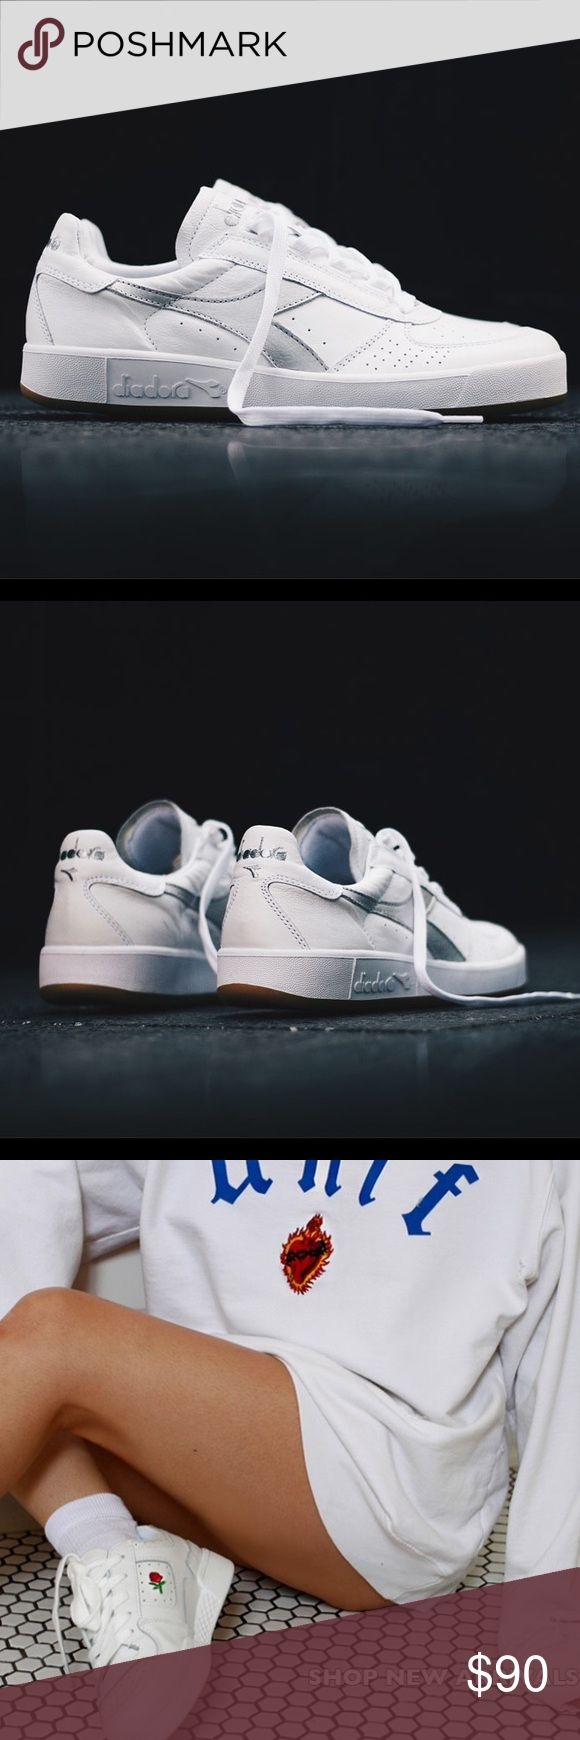 Diadora B. Elite women's white sneakers The perfect all white sneaker that every fashion blogger is wearing. I'm selling the shoes seen in the Photo 1 and 2. The latter photos are for styling ideas. Bought from TopShop for $125. Worn once, these were a size too small for me so I'm selling. Comes with box. Cheaper on ♏️erc, just ask! Diadora Shoes Sneakers